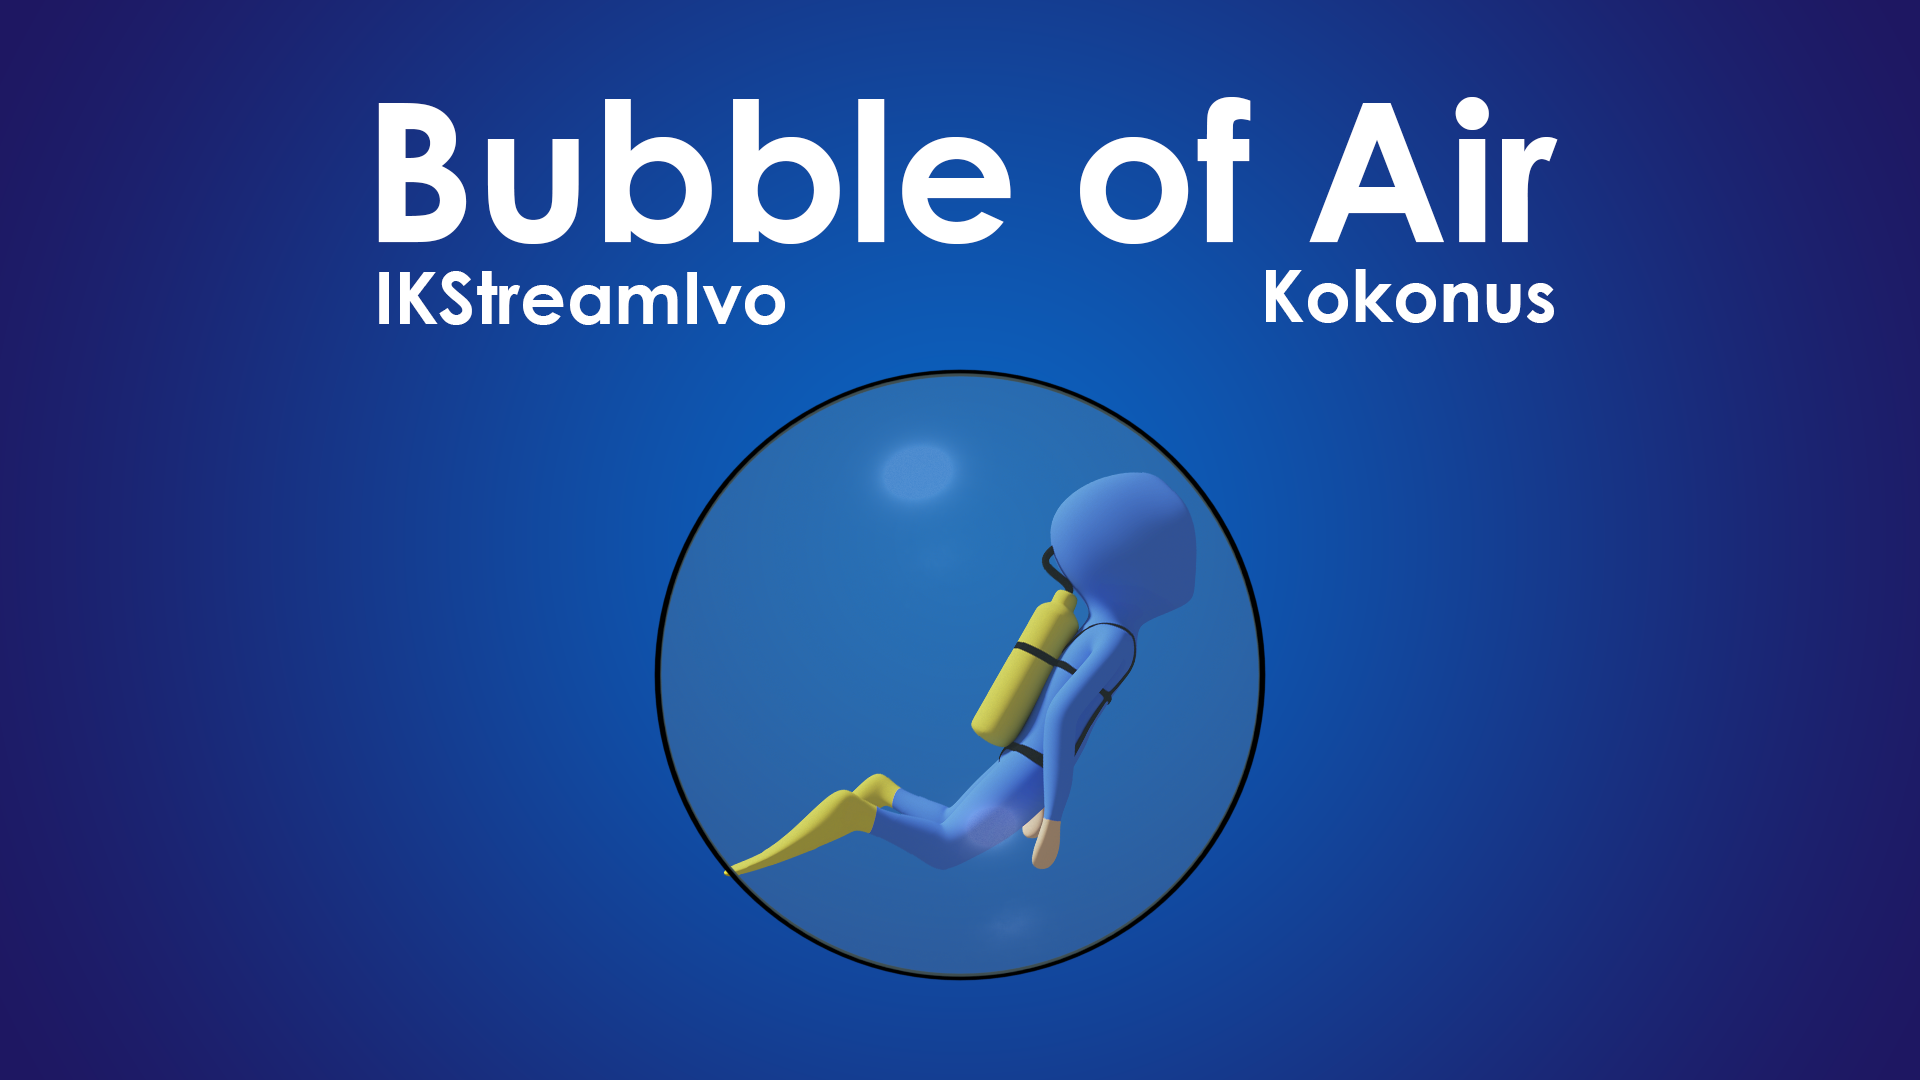 Bubble of Air